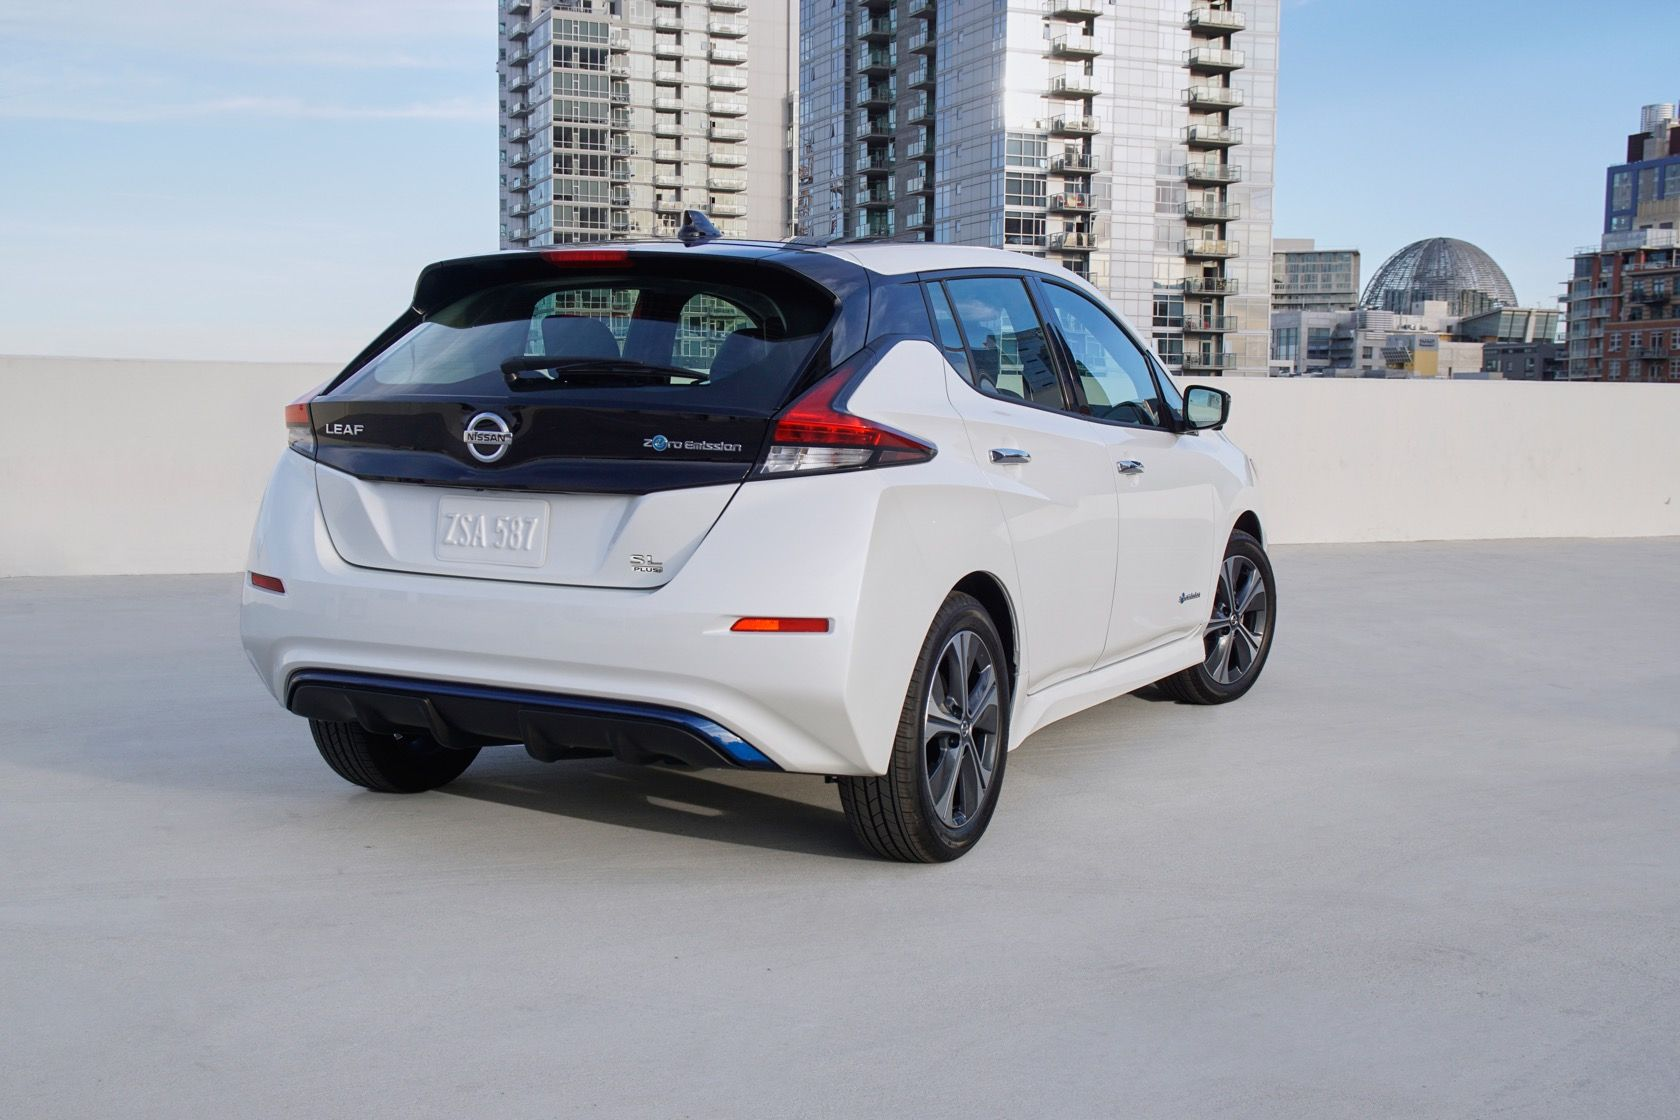 2019 Nissan Leaf Plus brings 226 miles of e+ range